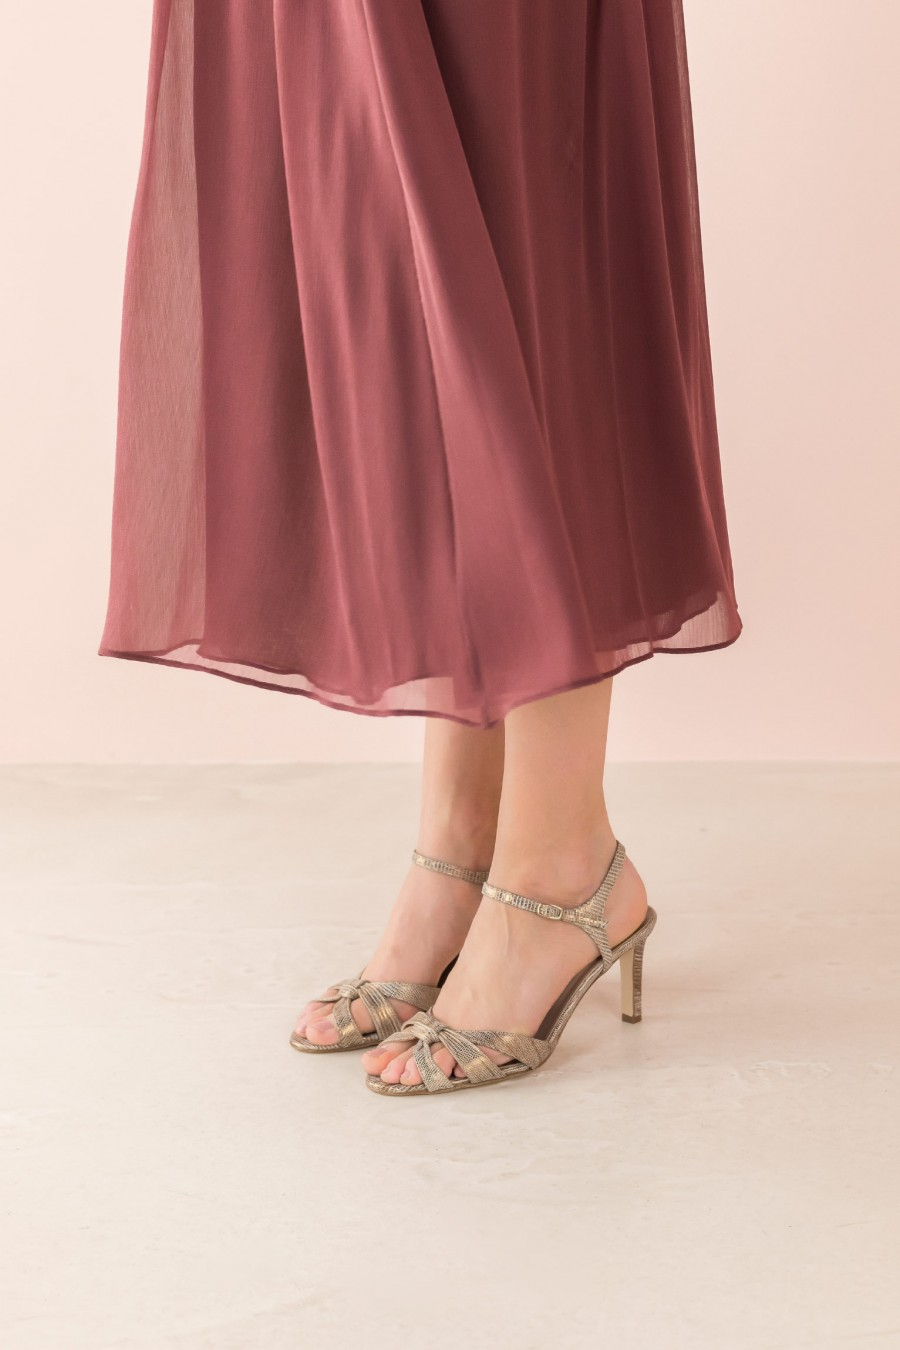 sandal with crossed straps and thin heel